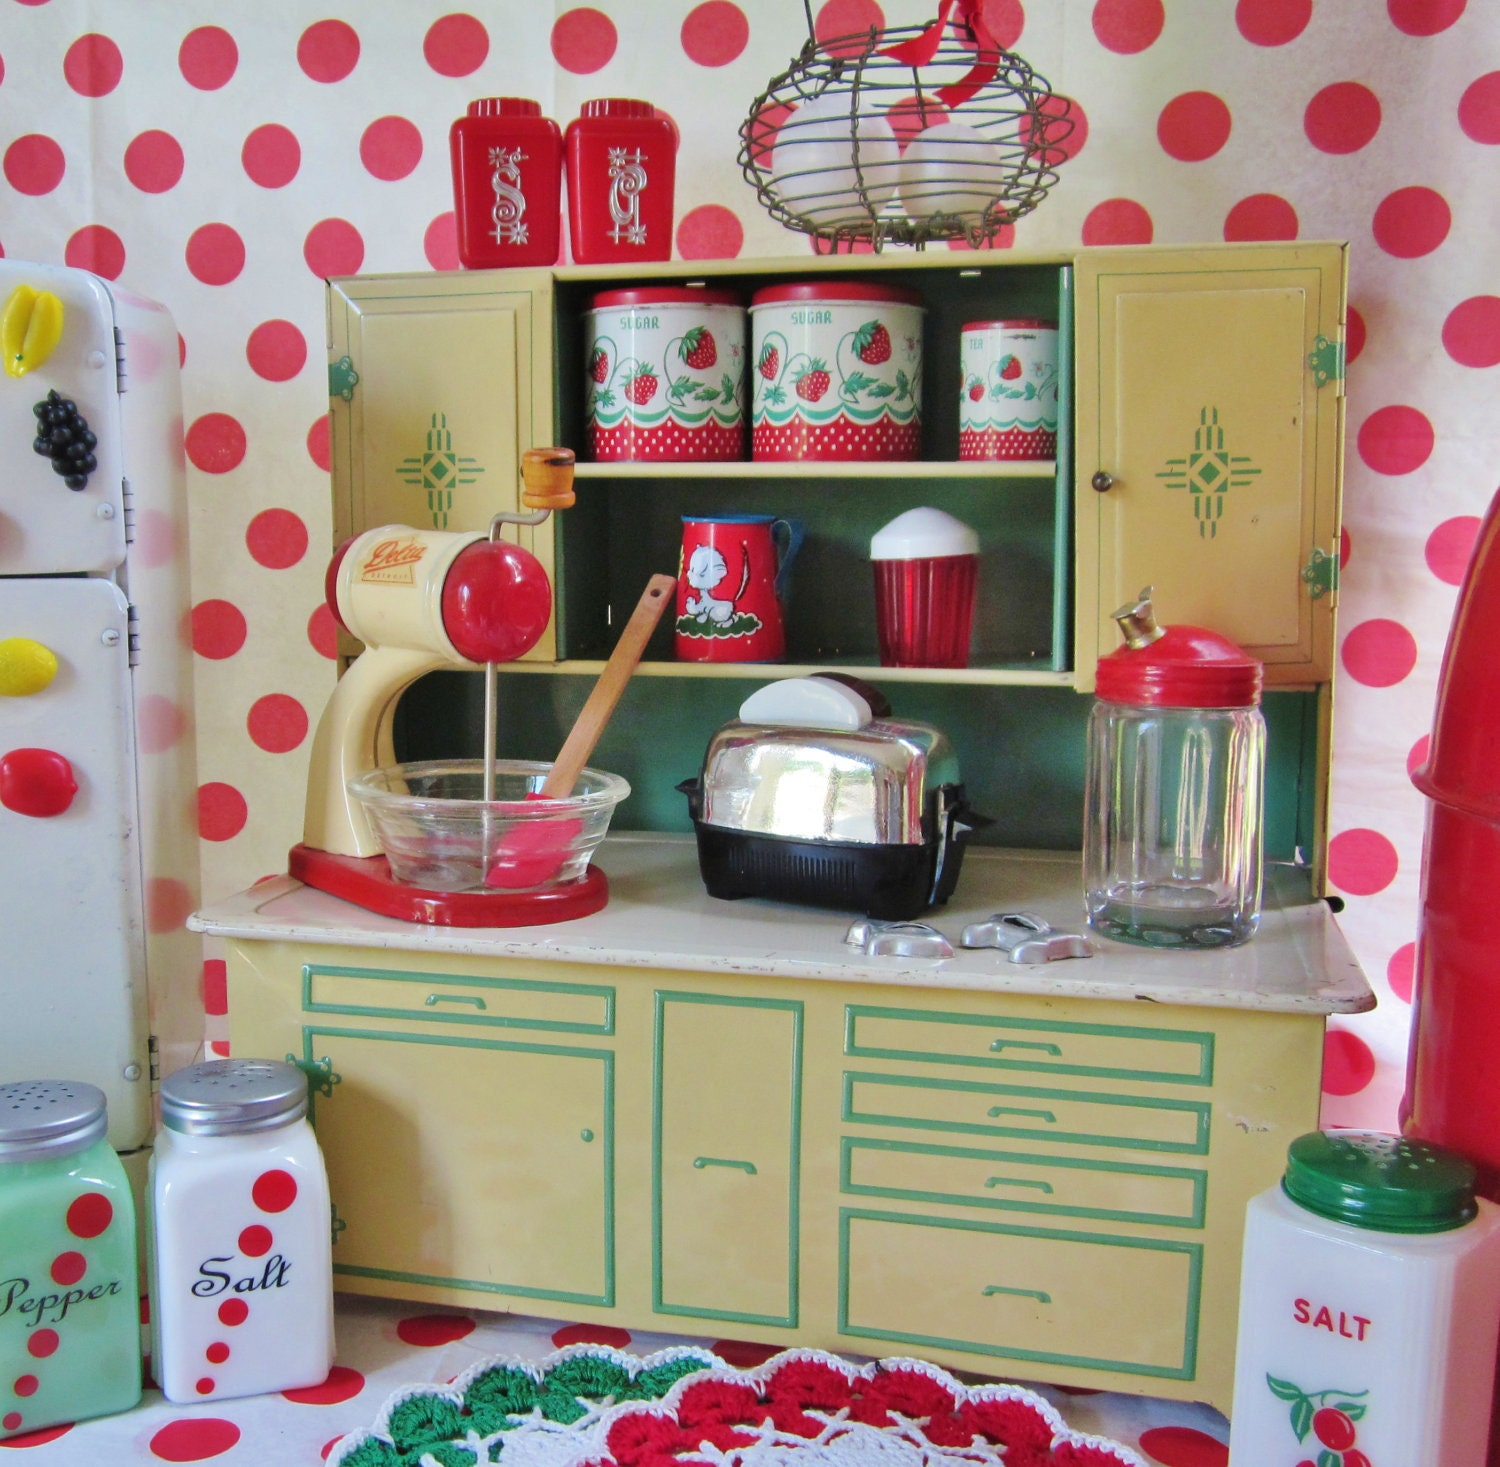 Kitchen Set For Sale: SALE Vintage Tin Toy Kitchen Cupboard Green Play Child